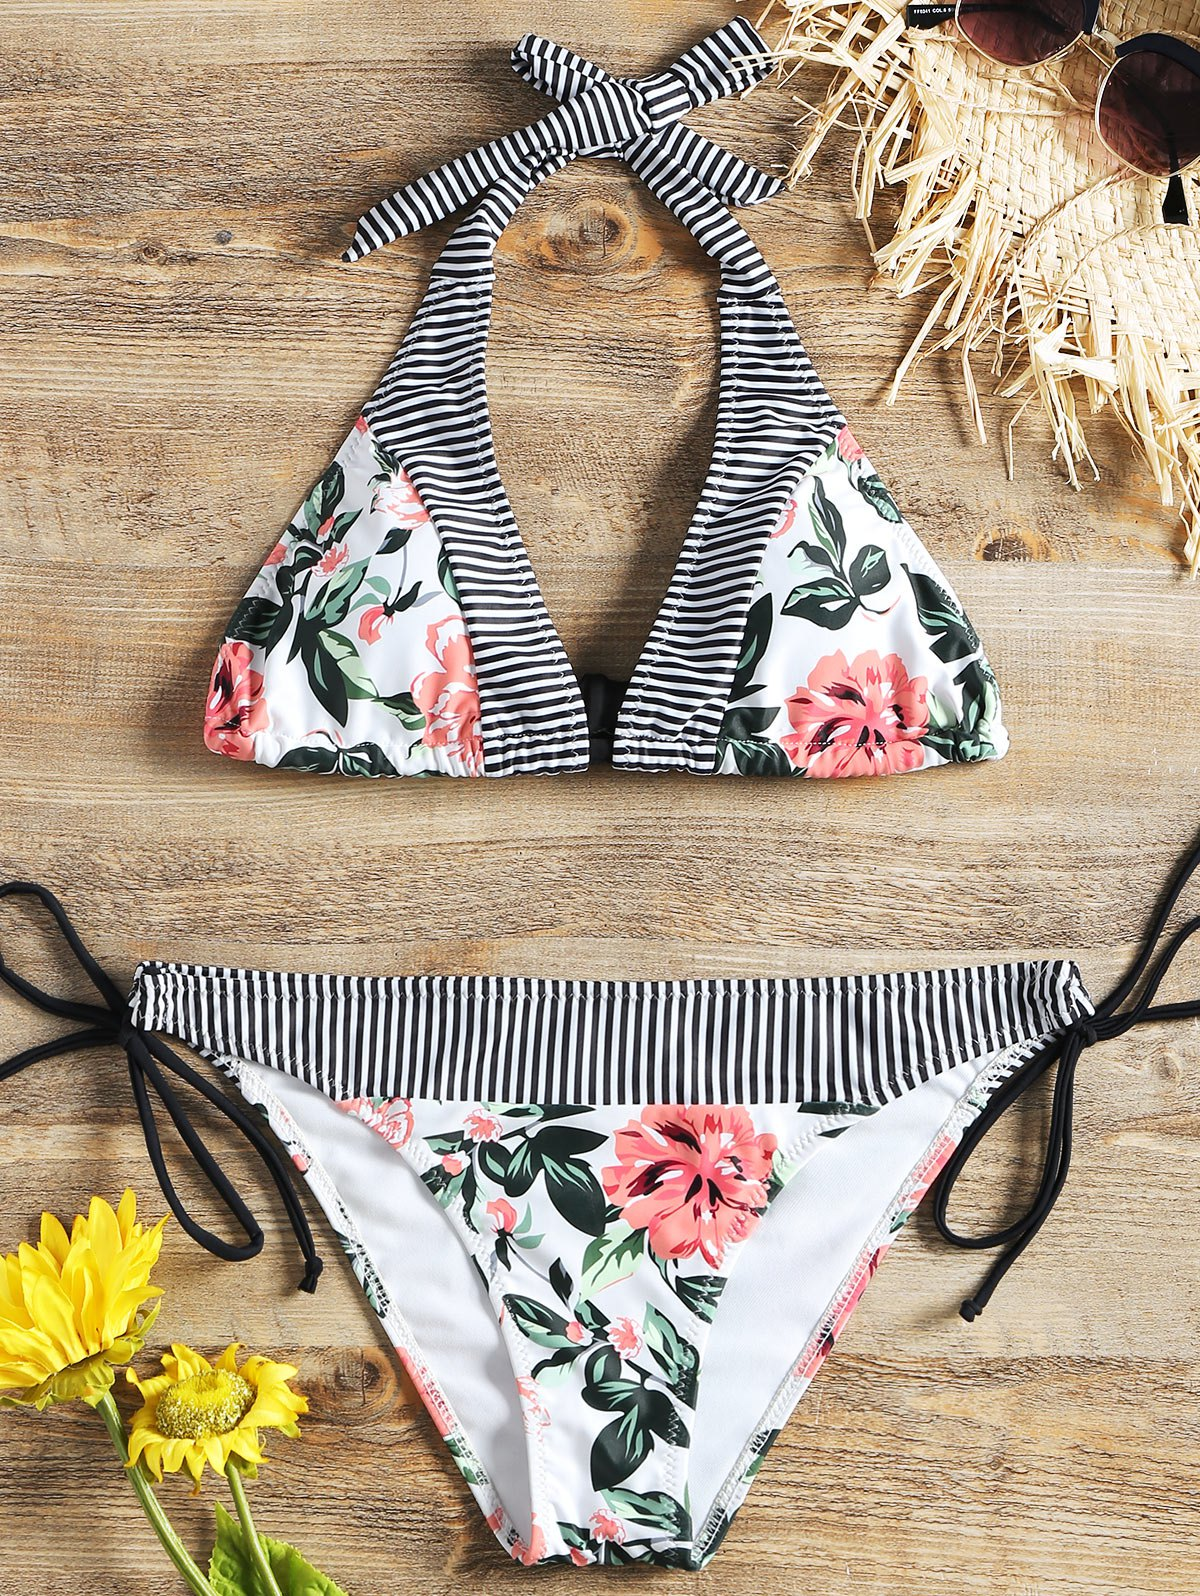 Floral Padded Bra with Tie Side Swim Bottoms 256891901